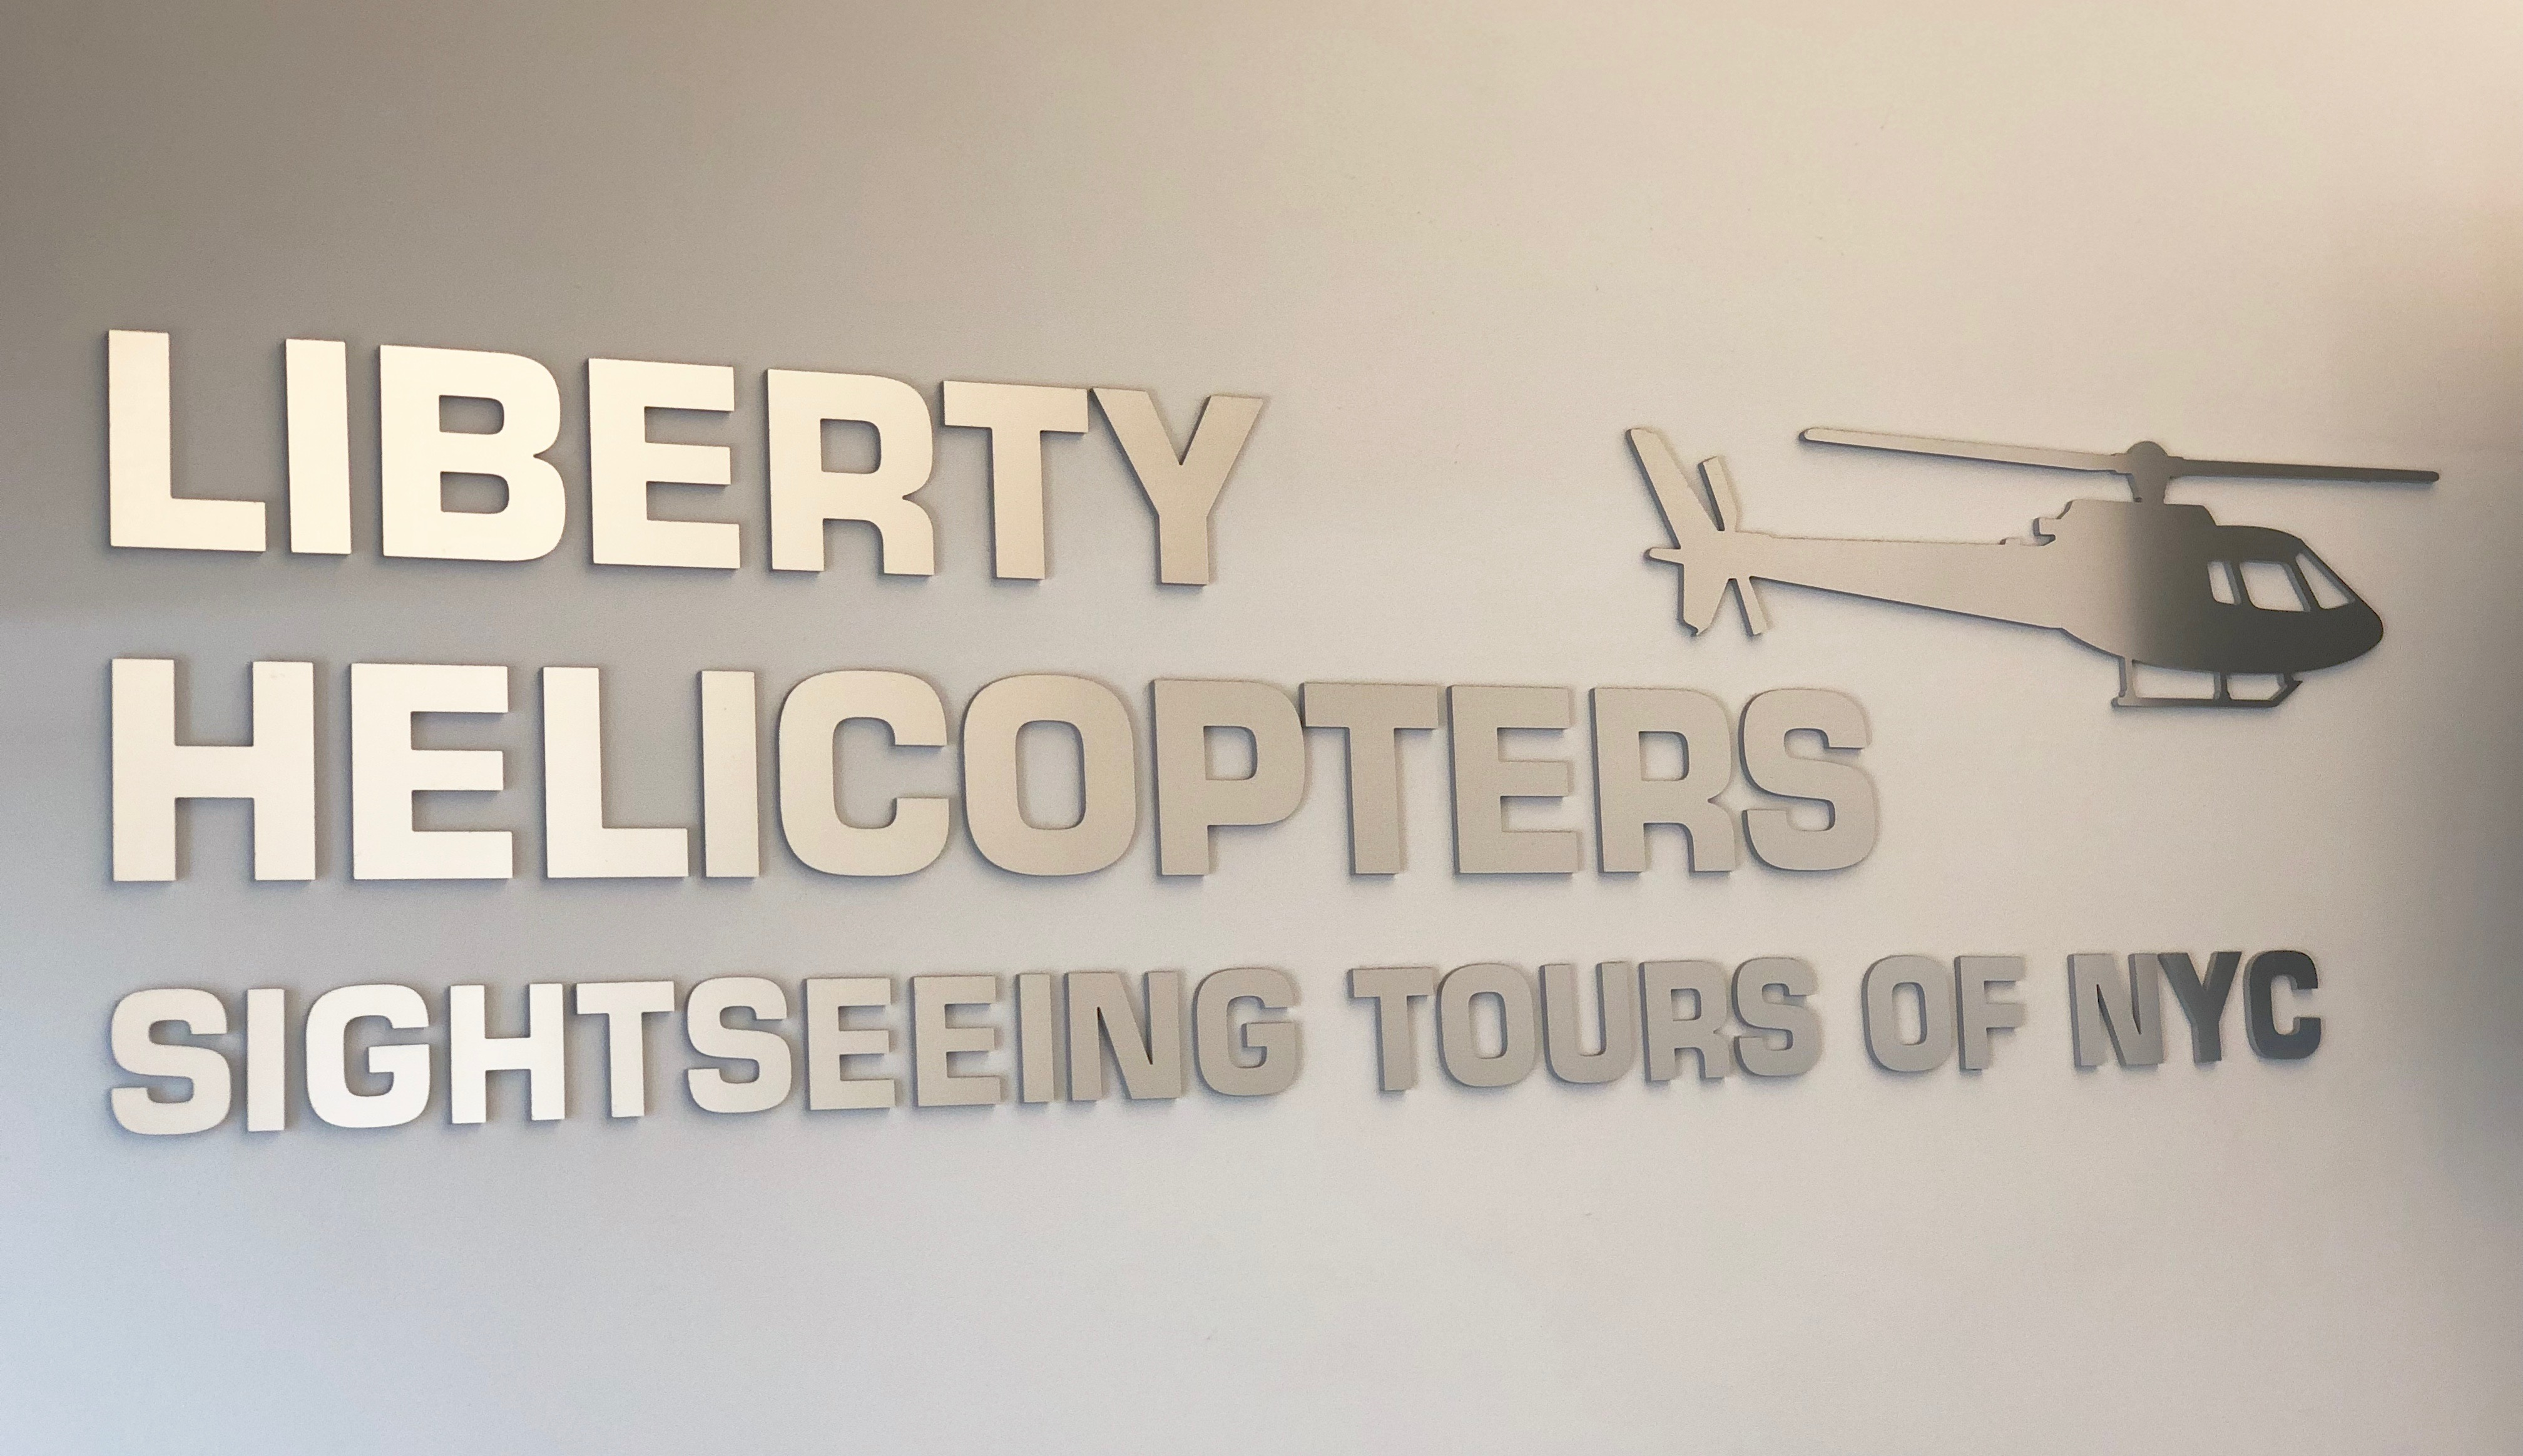 Liberty Helicopters Sightseeing Tours of NYC